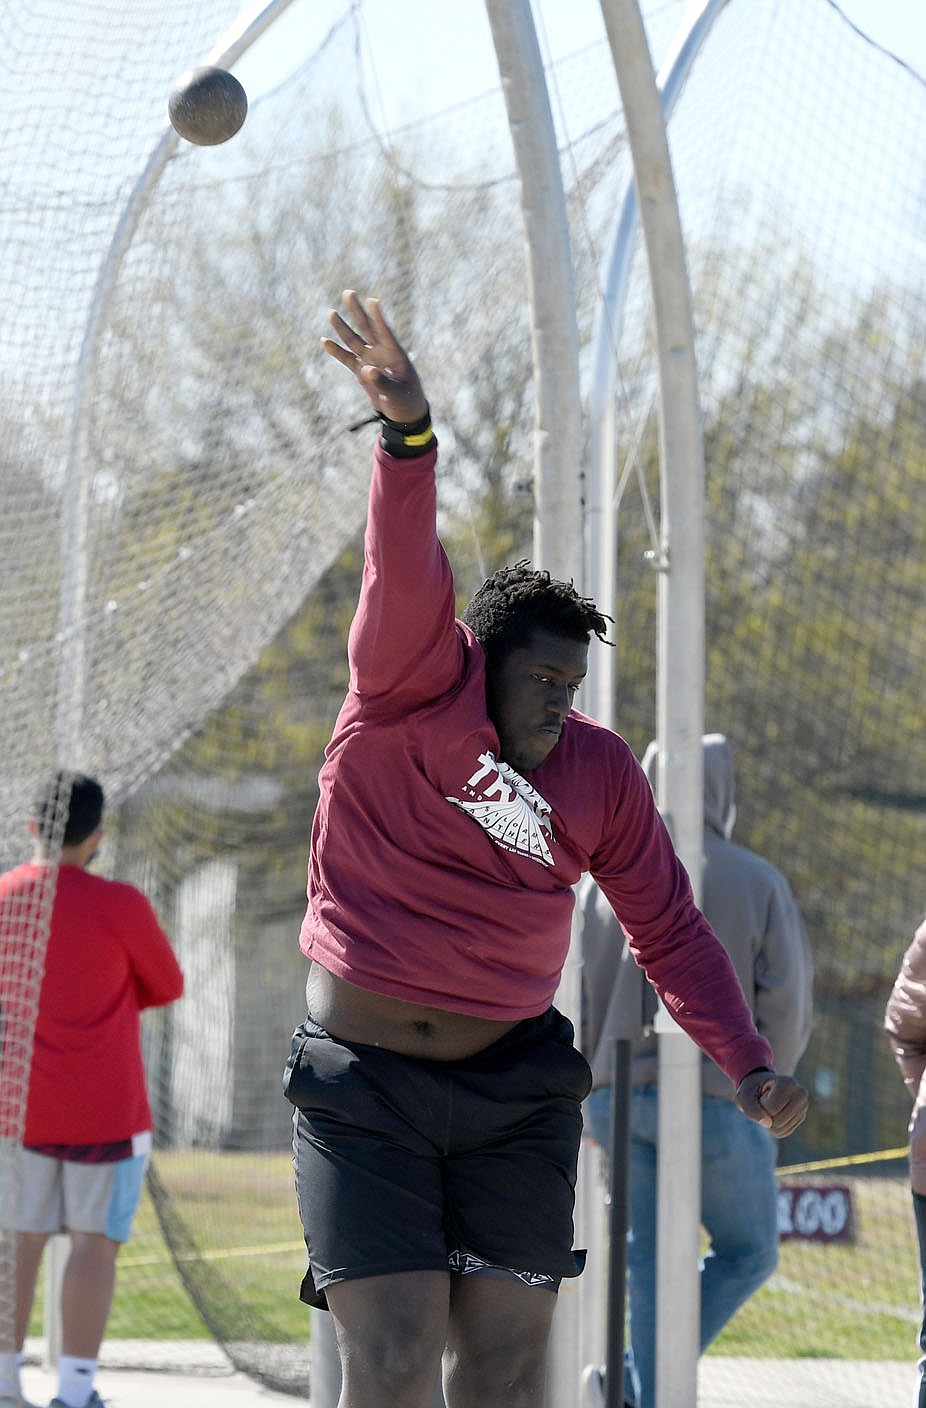 Bud Sullins/Special to the Herald-Leader Standley Theoc throws the shot during the Panther Relays on April 1 at Glenn W. Black Stadium.